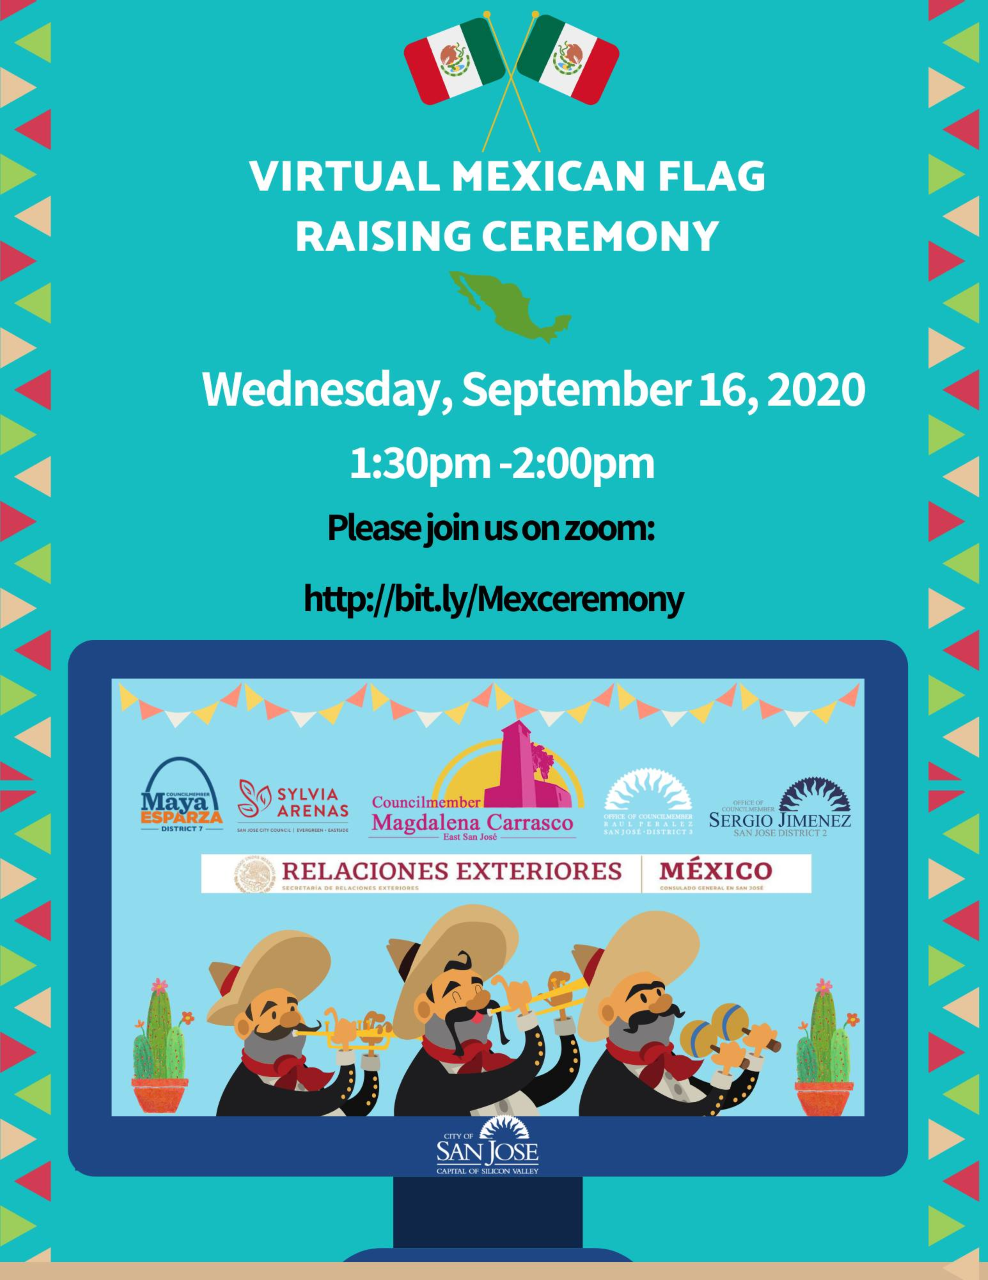 Virtual Mexican Flag Raising Ceremony Flyer